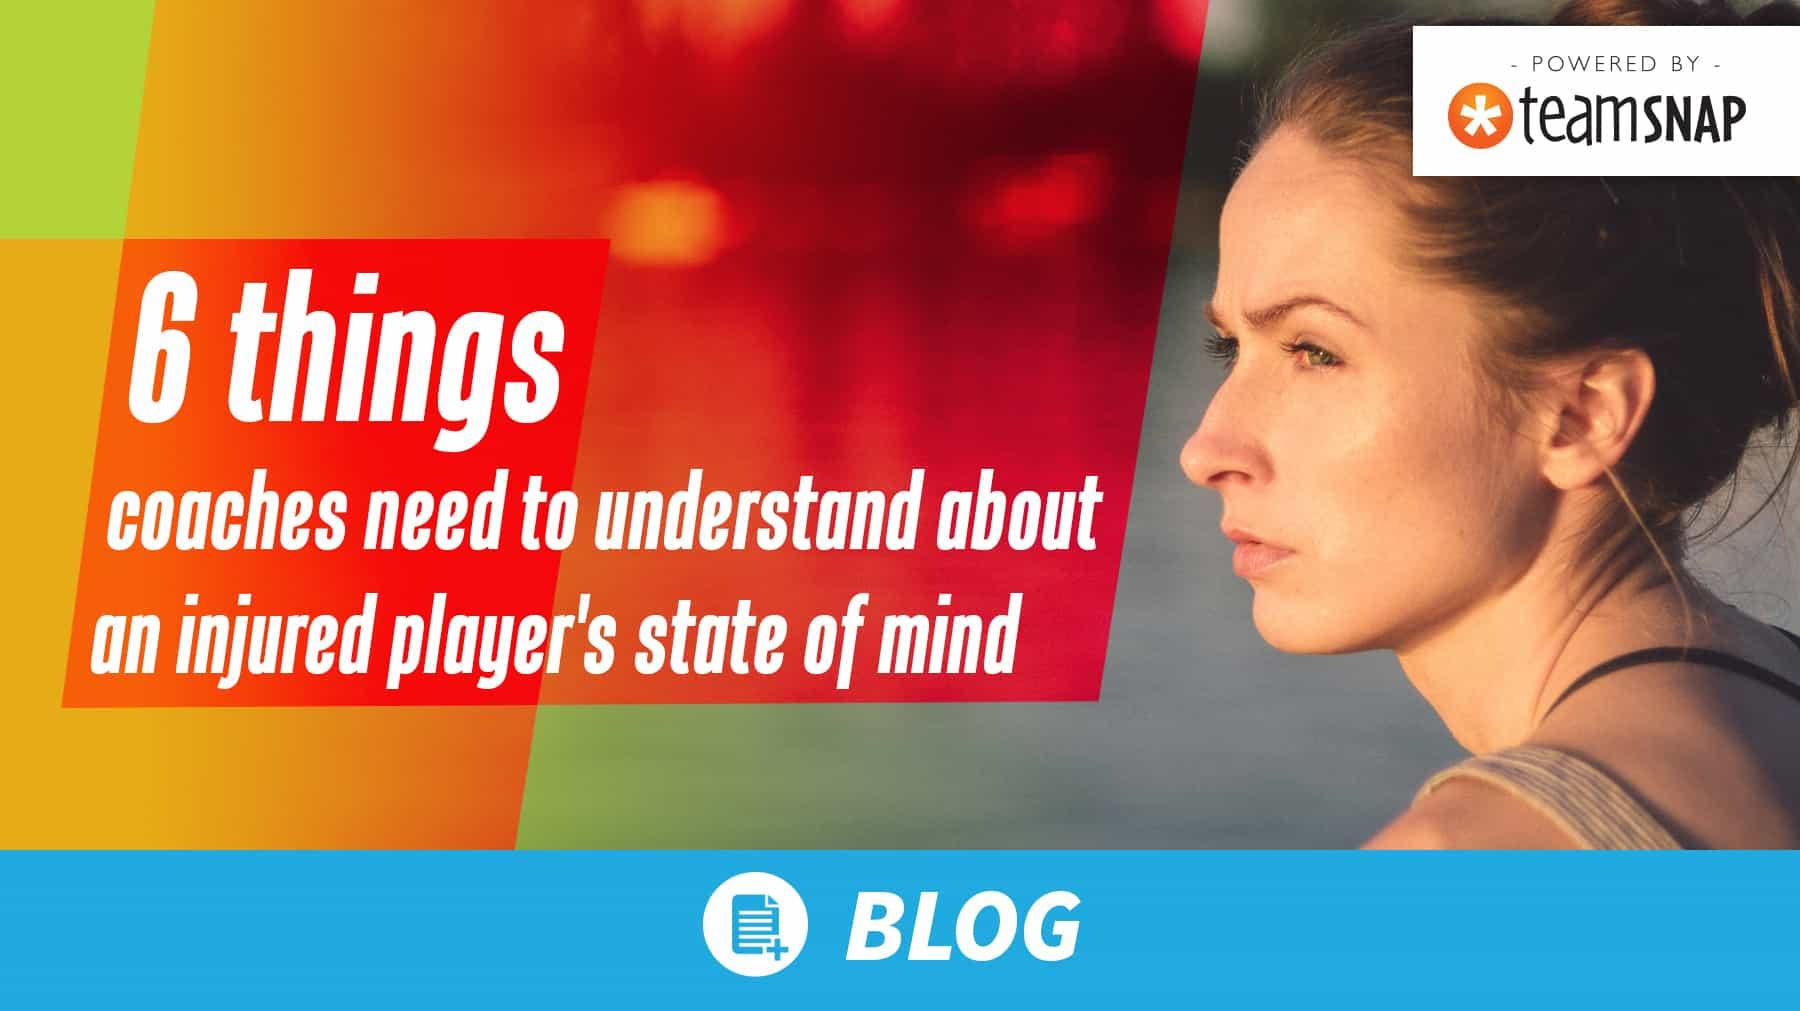 6 things coaches need to understand about an injured